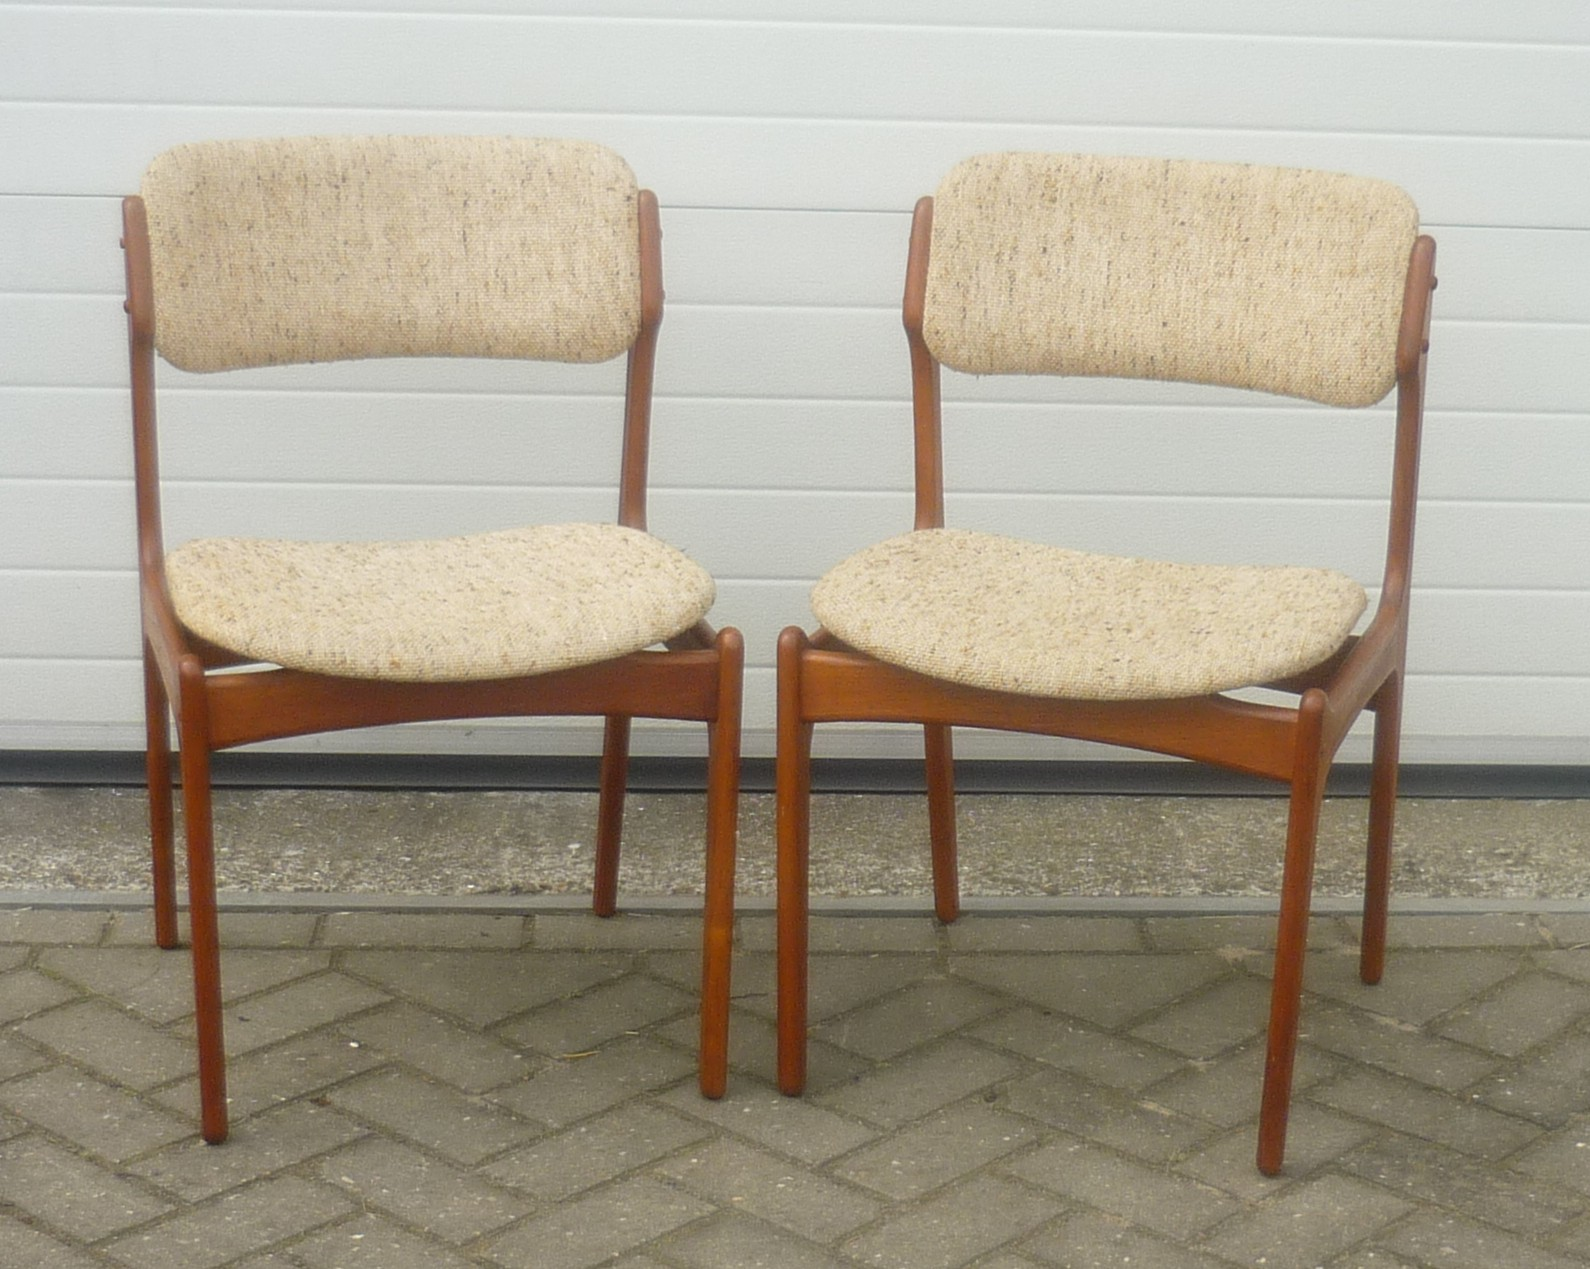 O D Mobler set of dining chairs in teak and wool Erik BUCH